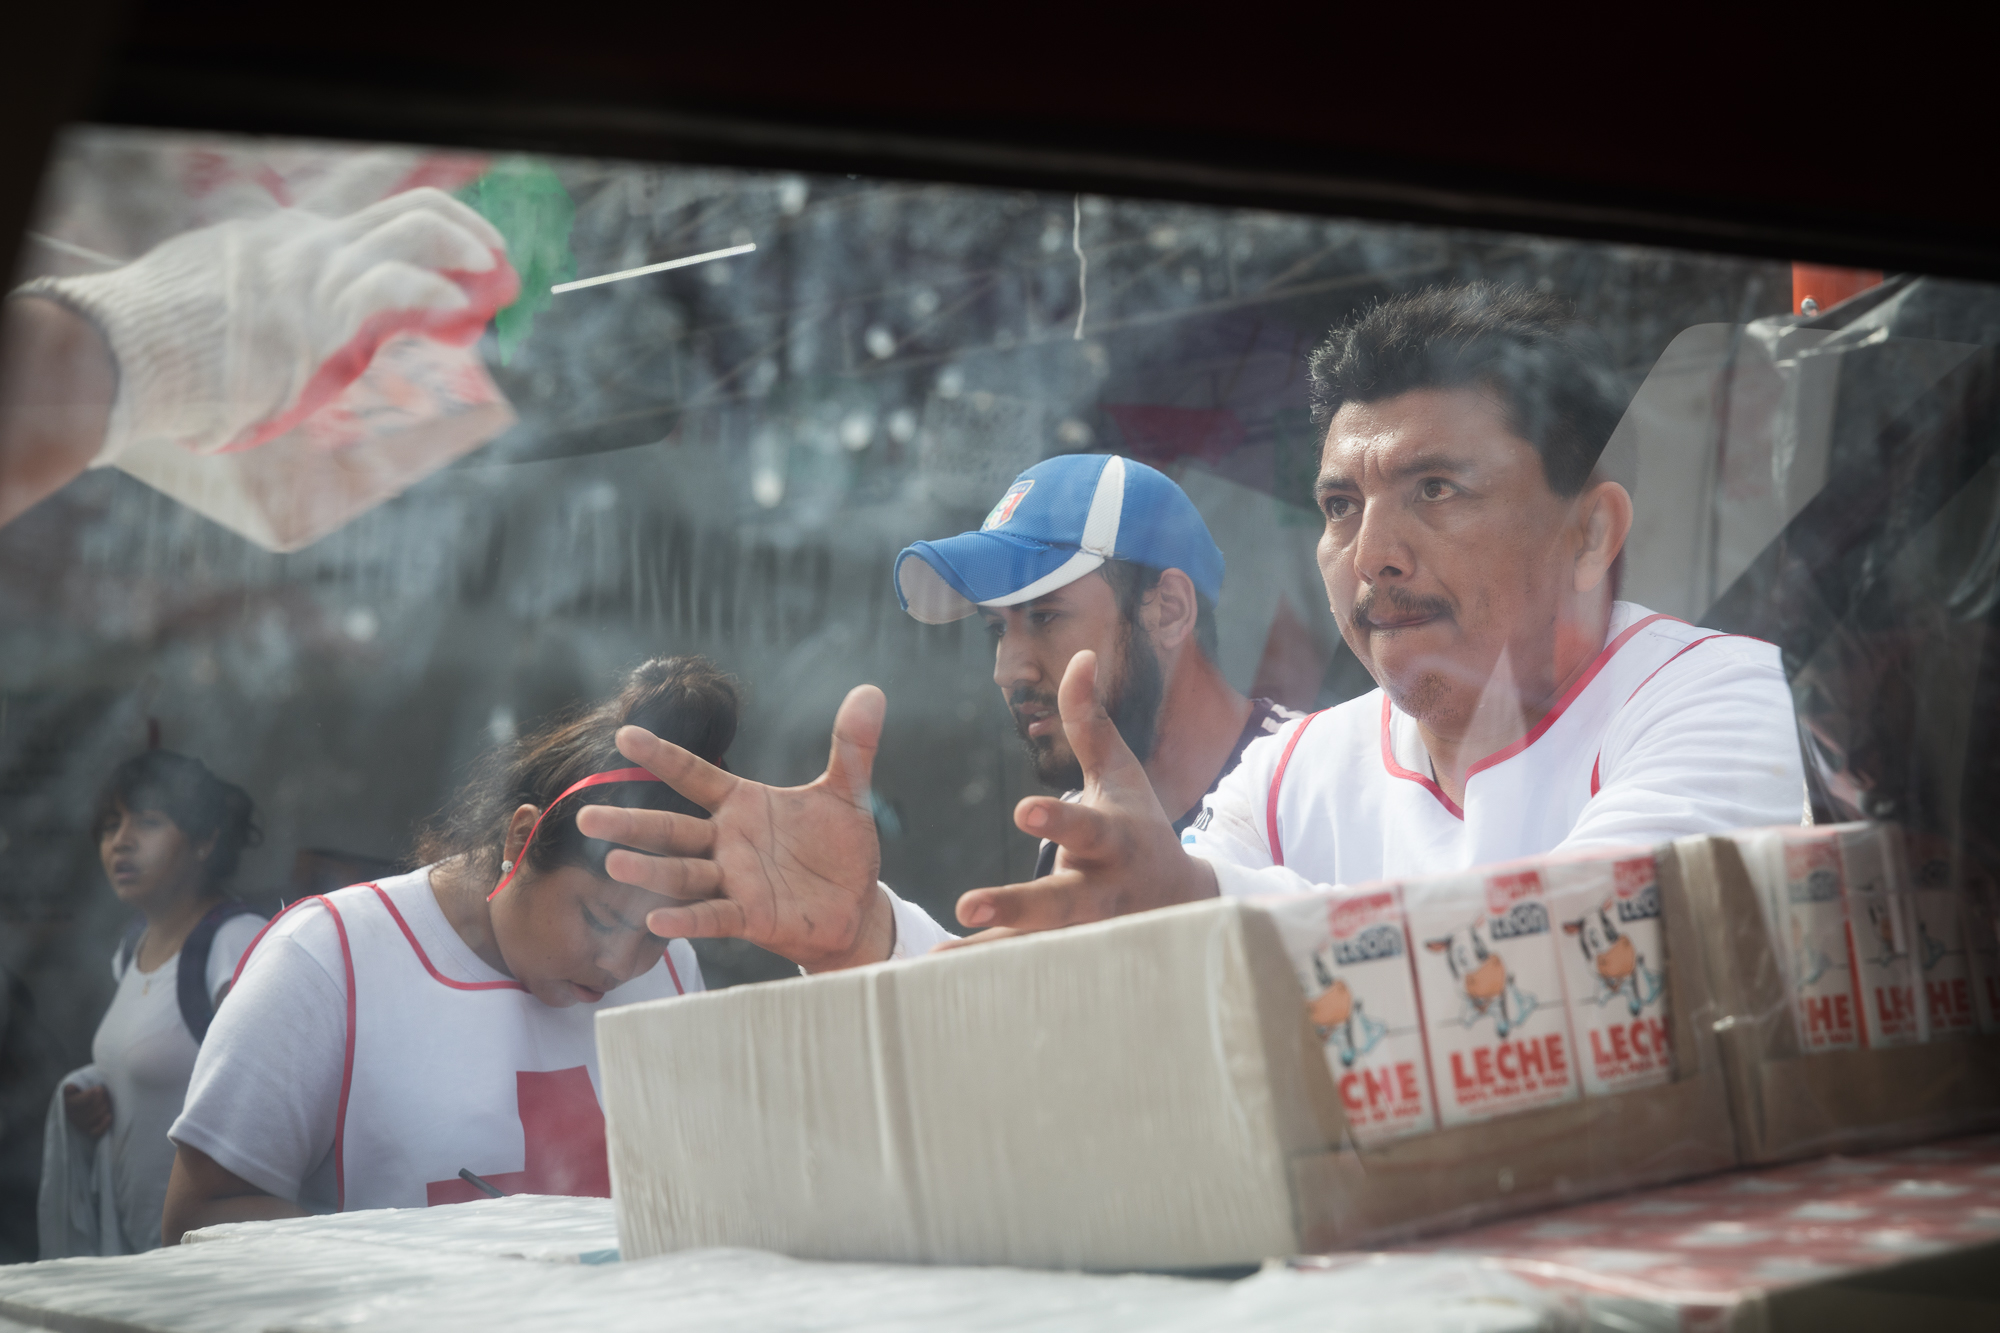 Mexican Red Cross and volunteers oading provisions to distribute to impacted communities at the Red Cross headquarters in Cuautla Morelos. PHOTO: Francisco Alcala Torreslanda